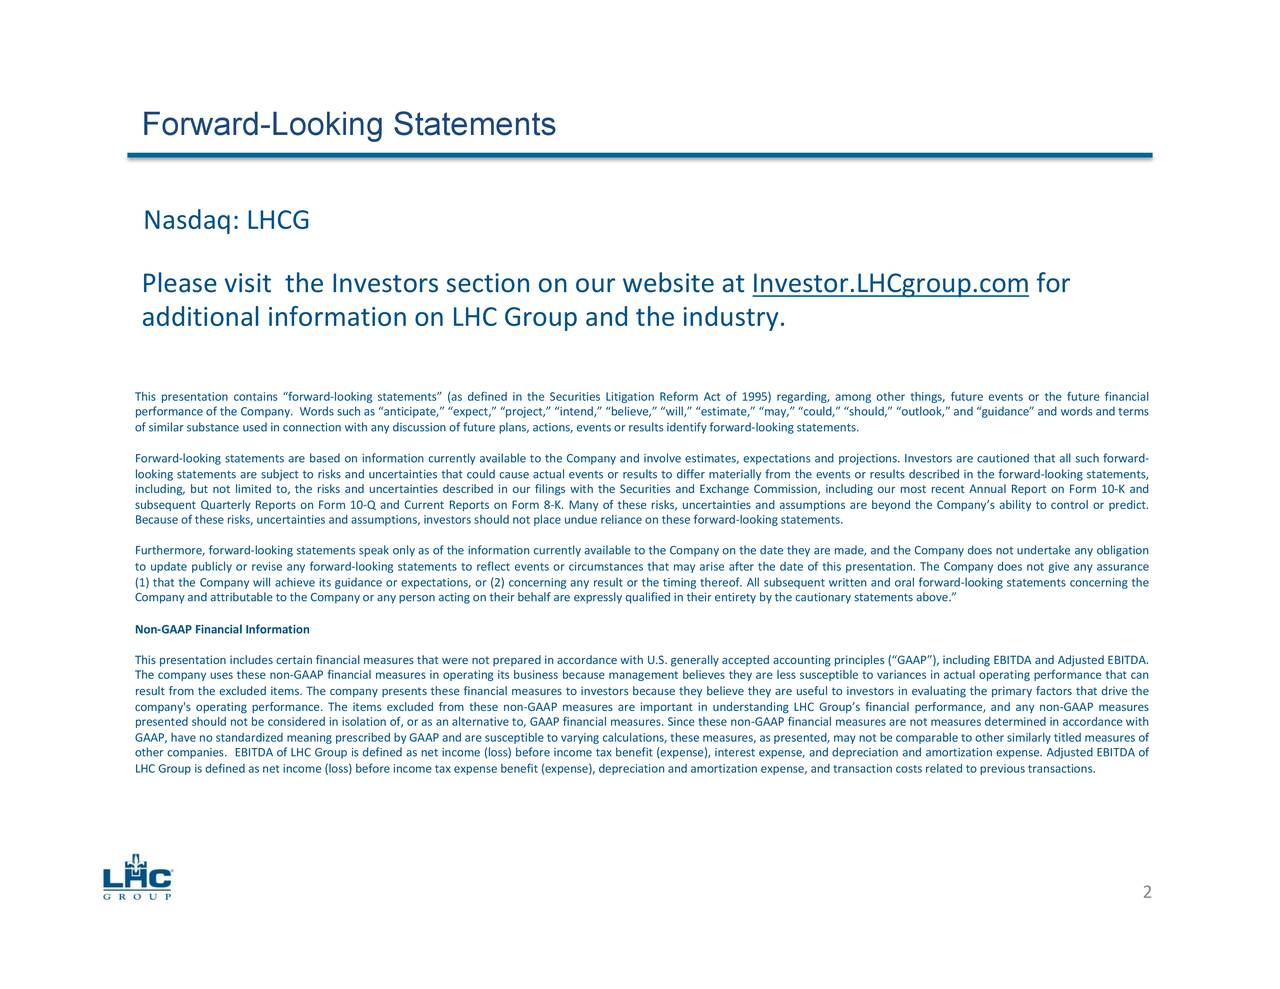 """Nasdaq: LHCG Please visit the Investors section on our website at Investor.LHCgroup.com for additional information on LHC Group and the industry. This presentation contains """"forward-looking statements"""" (as defined in the Securities Litigation Reform Act of 1995) regarding, among other things, future events or the future financial performance of the Company. Words such as """"anticipate,"""" """"expect,"""" """"project,"""" """"intend,"""" """"believe,"""" """"will,"""" """"estimate,"""" """"may,"""" """"could,"""" """"should,"""" """"outlook,"""" and """"guidance"""" and words and terms of similar substance used in connection with any discussion of future plans, actions, events or results identify forward-looking statements. Forward-looking statements are based on information currently available to the Company and involve estimates, expectations and projections. Investors are cautioned that all such forward- looking statements are subject to risks and uncertainties that could cause actual events or results to differ materially from the events or results described in the forward-looking statements, including, but not limited to, the risks and uncertainties described in our filings with the Securities and Exchange Commission, including our most recent Annual Report on Form 10-K and subsequent Quarterly Reports on Form 10-Q and Current Reports on Form 8-K. Many of these risks, uncertainties and assumptions are beyond the Company's ability to control or predict. Because of these risks, uncertainties and assumptions, investors should not place undue reliance on these forward-looking statements. Furthermore, forward-looking statements speak only as of the information currently available to the Company on the date they are made, and the Company does not undertake any obligation to update publicly or revise any forward-looking statements to reflect events or circumstances that may arise after the date of this presentation. The Company does not give any assurance (1) that the Company will achieve its guidance or expectations, or (2) concerning a"""